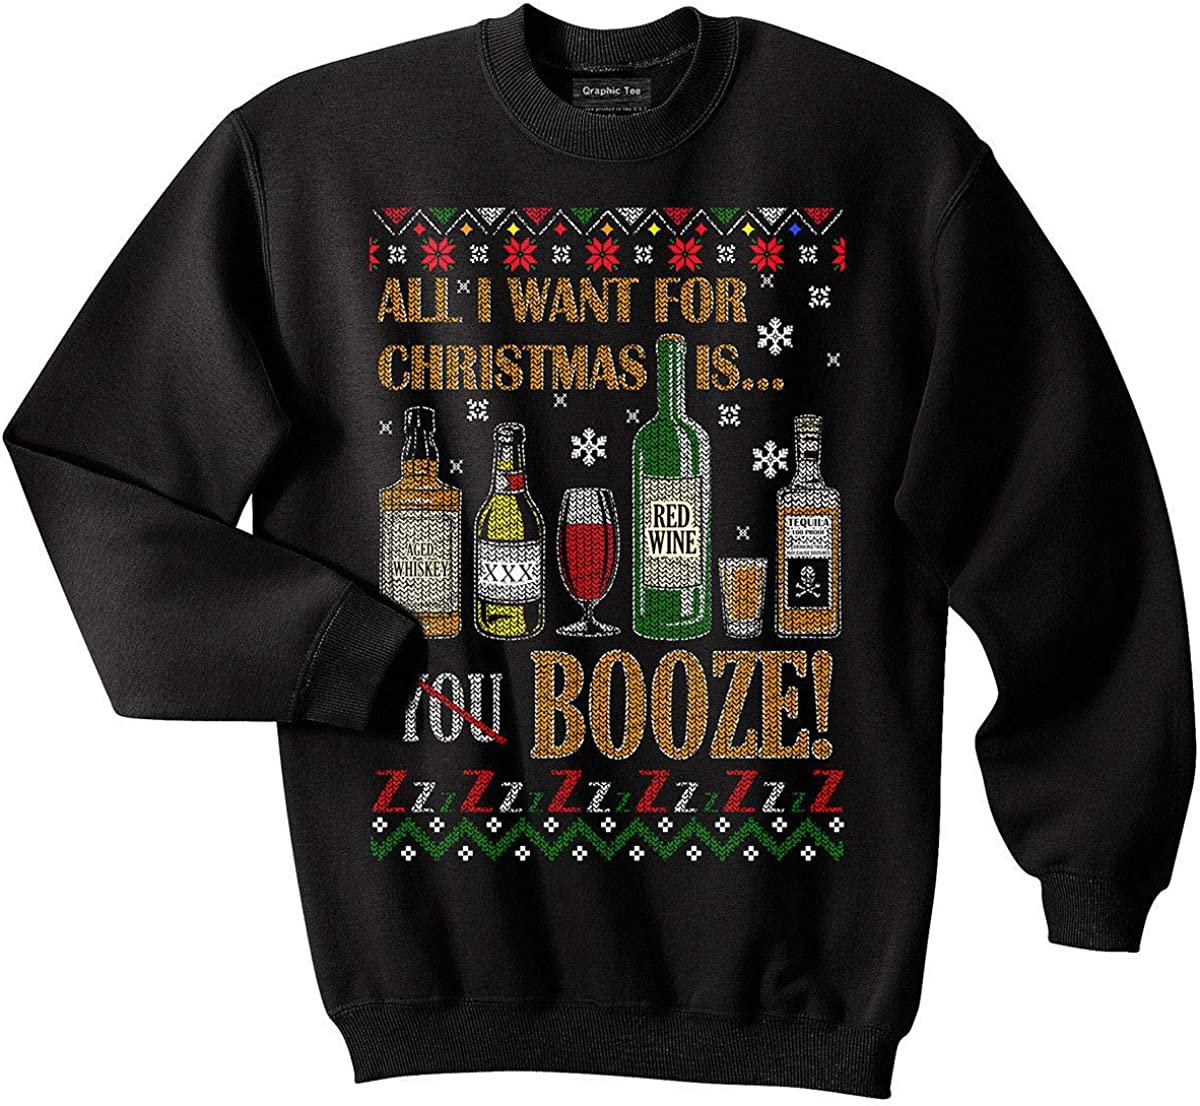 Conspiracy Tee Drinks Ugly Christmas Sweater, Booze, Alcohol, Drunk, Funny, Meme, Beer, Whiskey